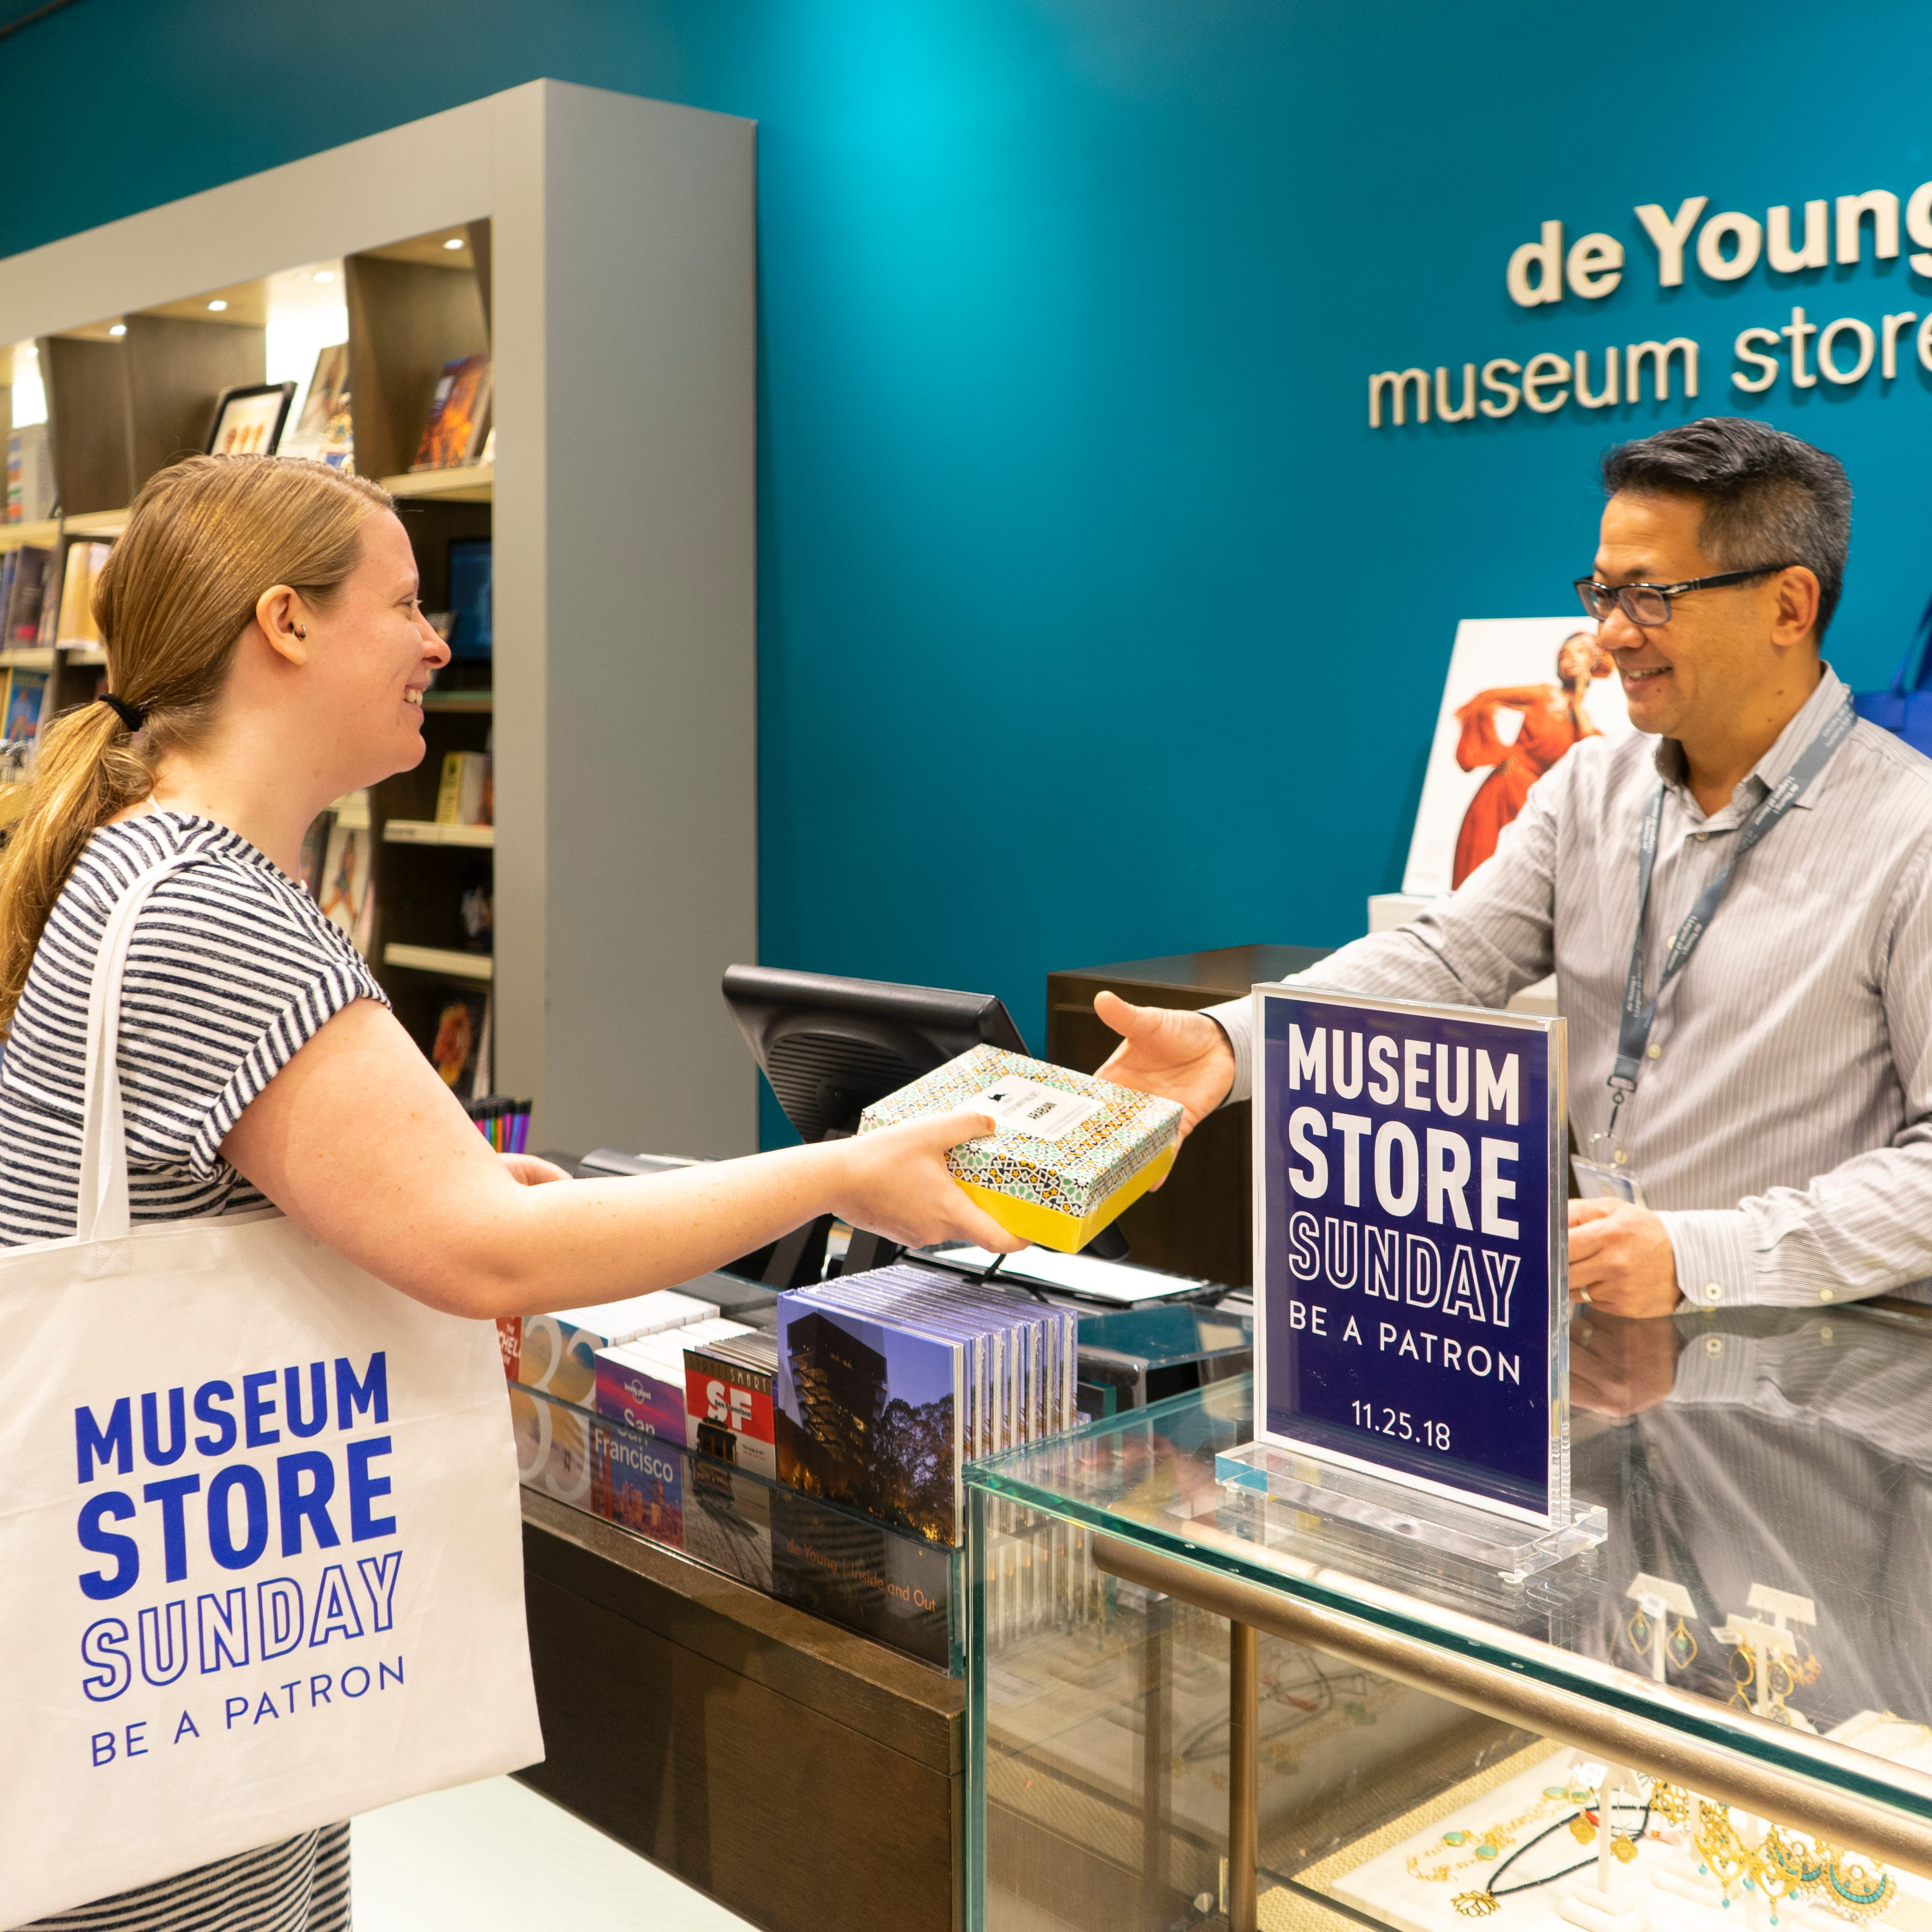 Museum Store Sunday: Support small local businesses off the beaten holiday path